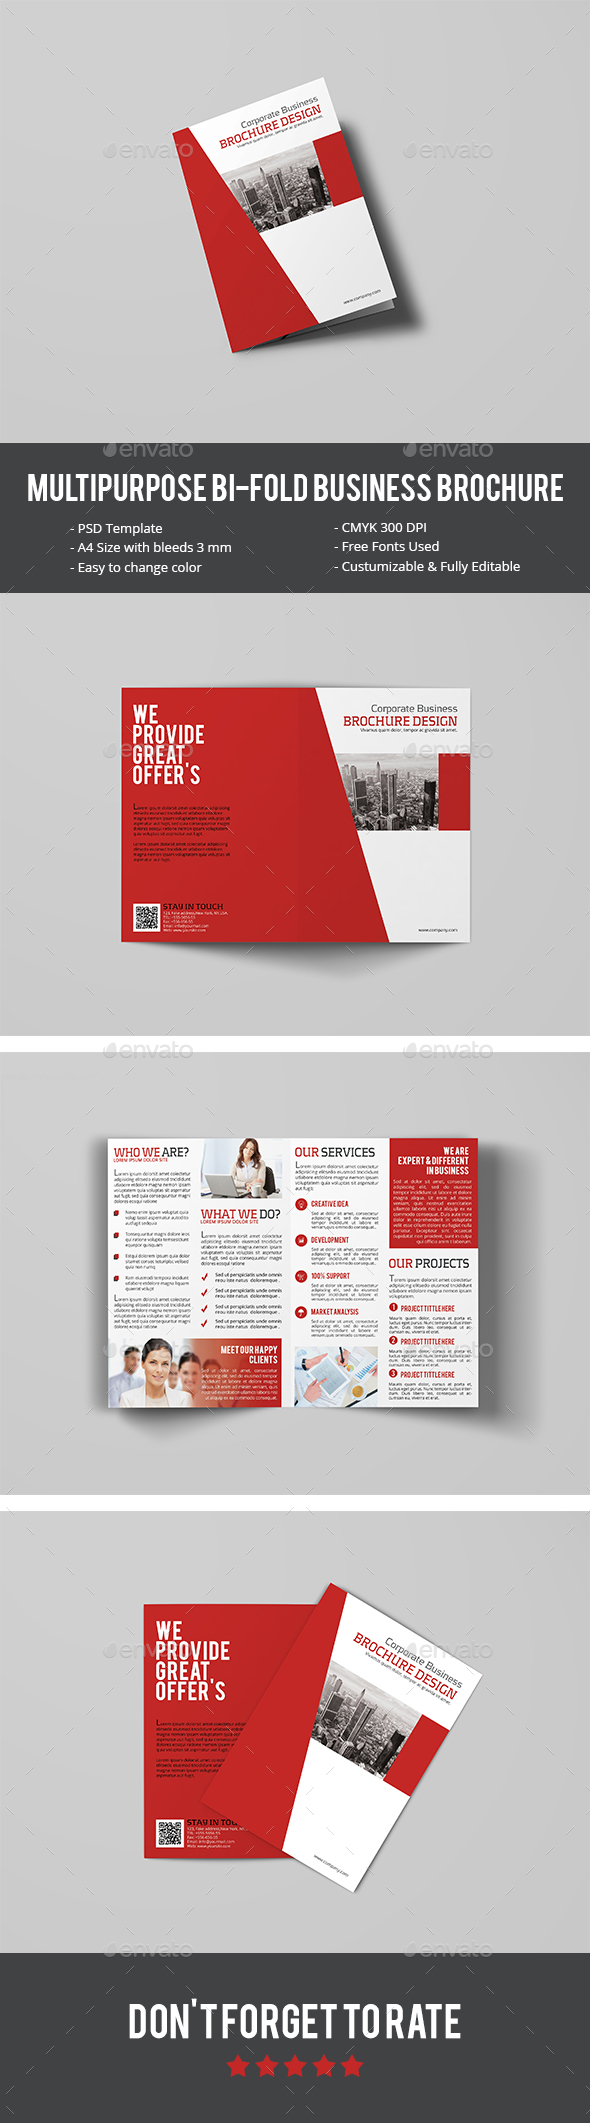 Multipurpose Bi-Fold Business Brochure - Corporate Brochures